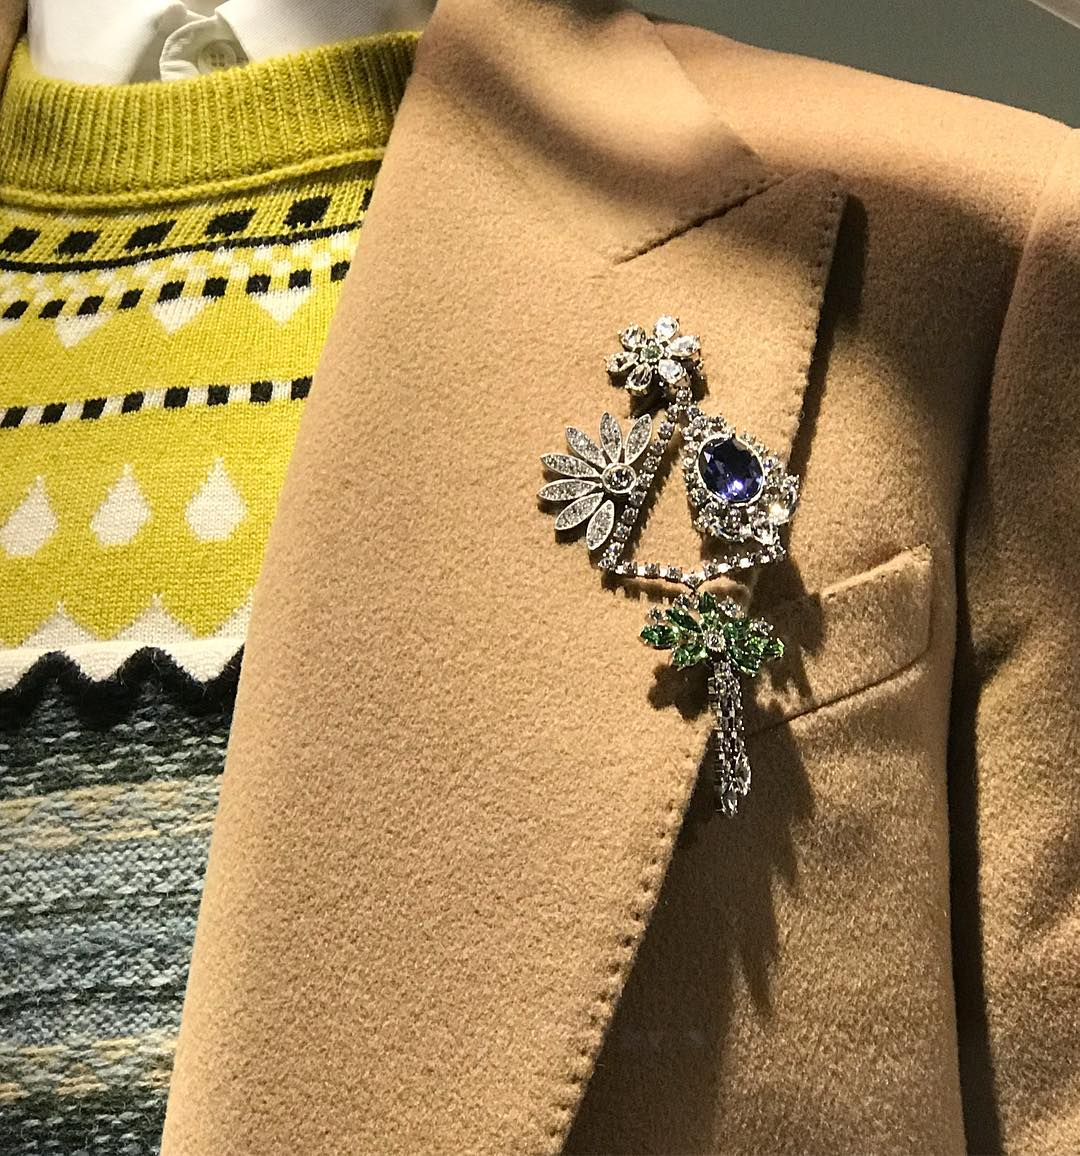 Brooch obsession. @burberry earrings worn as #brooches #togofurther click the link in the bio  __________ #display #earrings #detournementdobjet #broochobsession #allaboutbrooch #ruedufaubourgsainthonoré sainthonore #burberry #mywishlist #christmasgift #christmasalert #broocheveryday